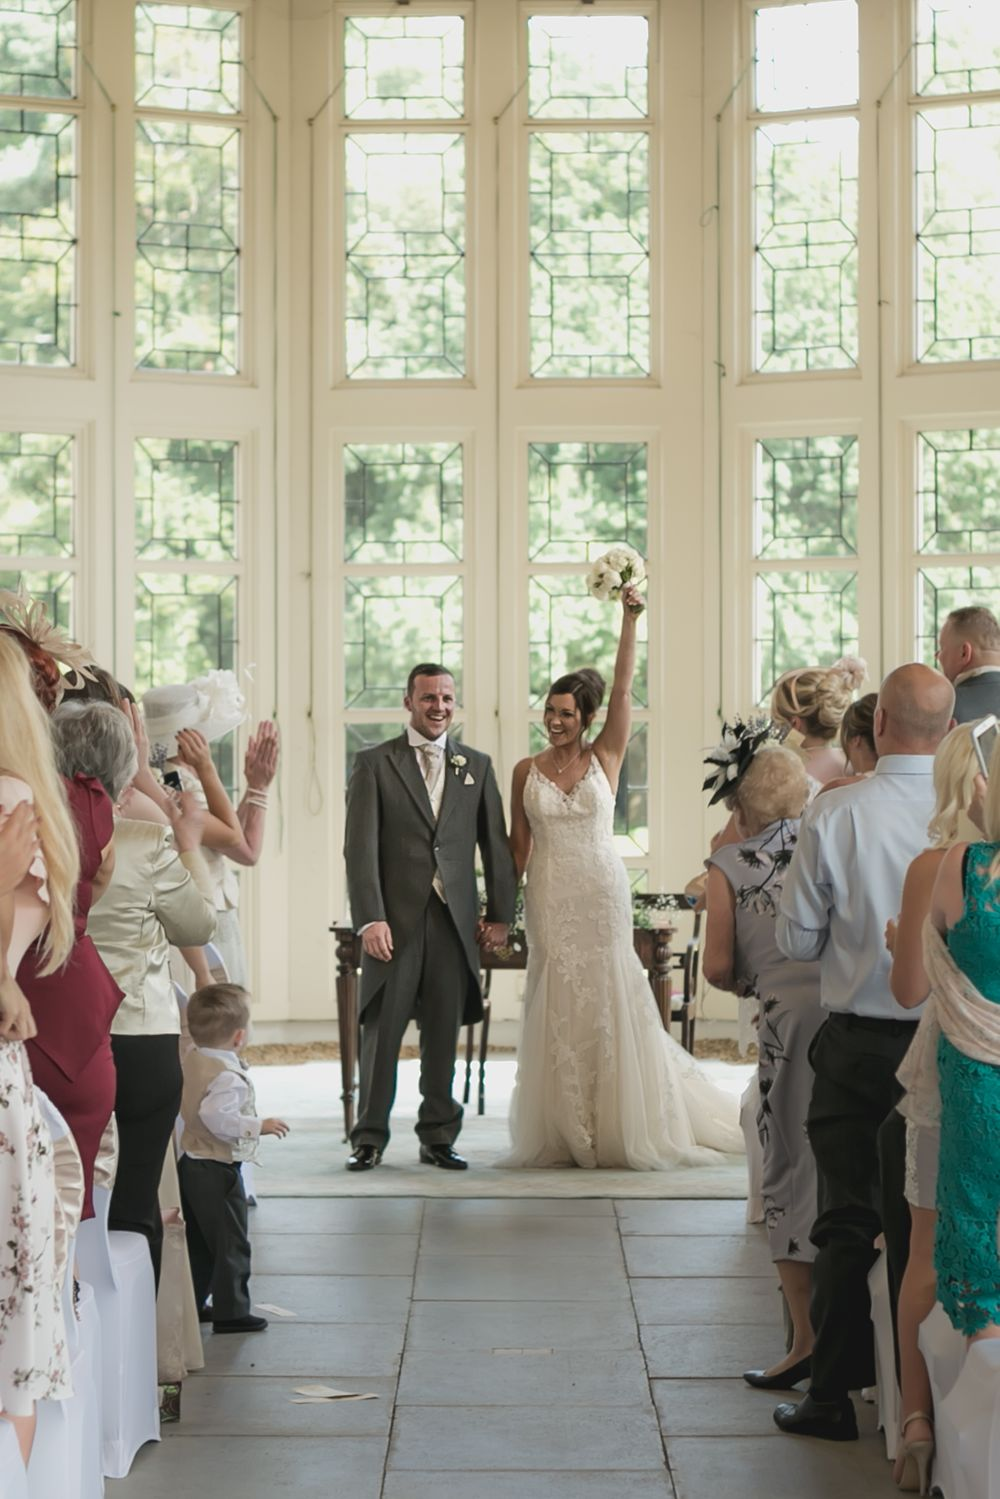 Bride holding her bouquet in the air after her ceremony at Highcliffe Castle